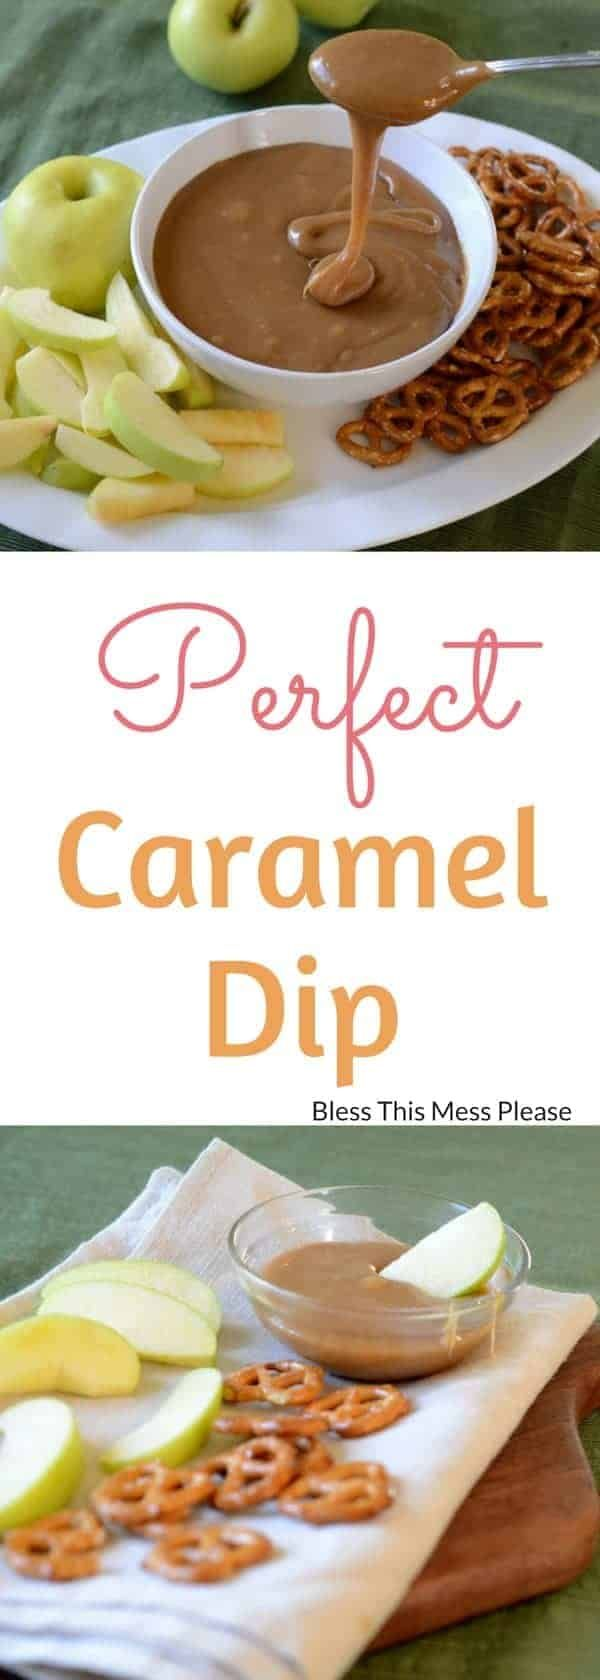 This Is The Caramel Dip Of Your Dreams Recipe In 2020 Caramel Dip Recipes Snacks